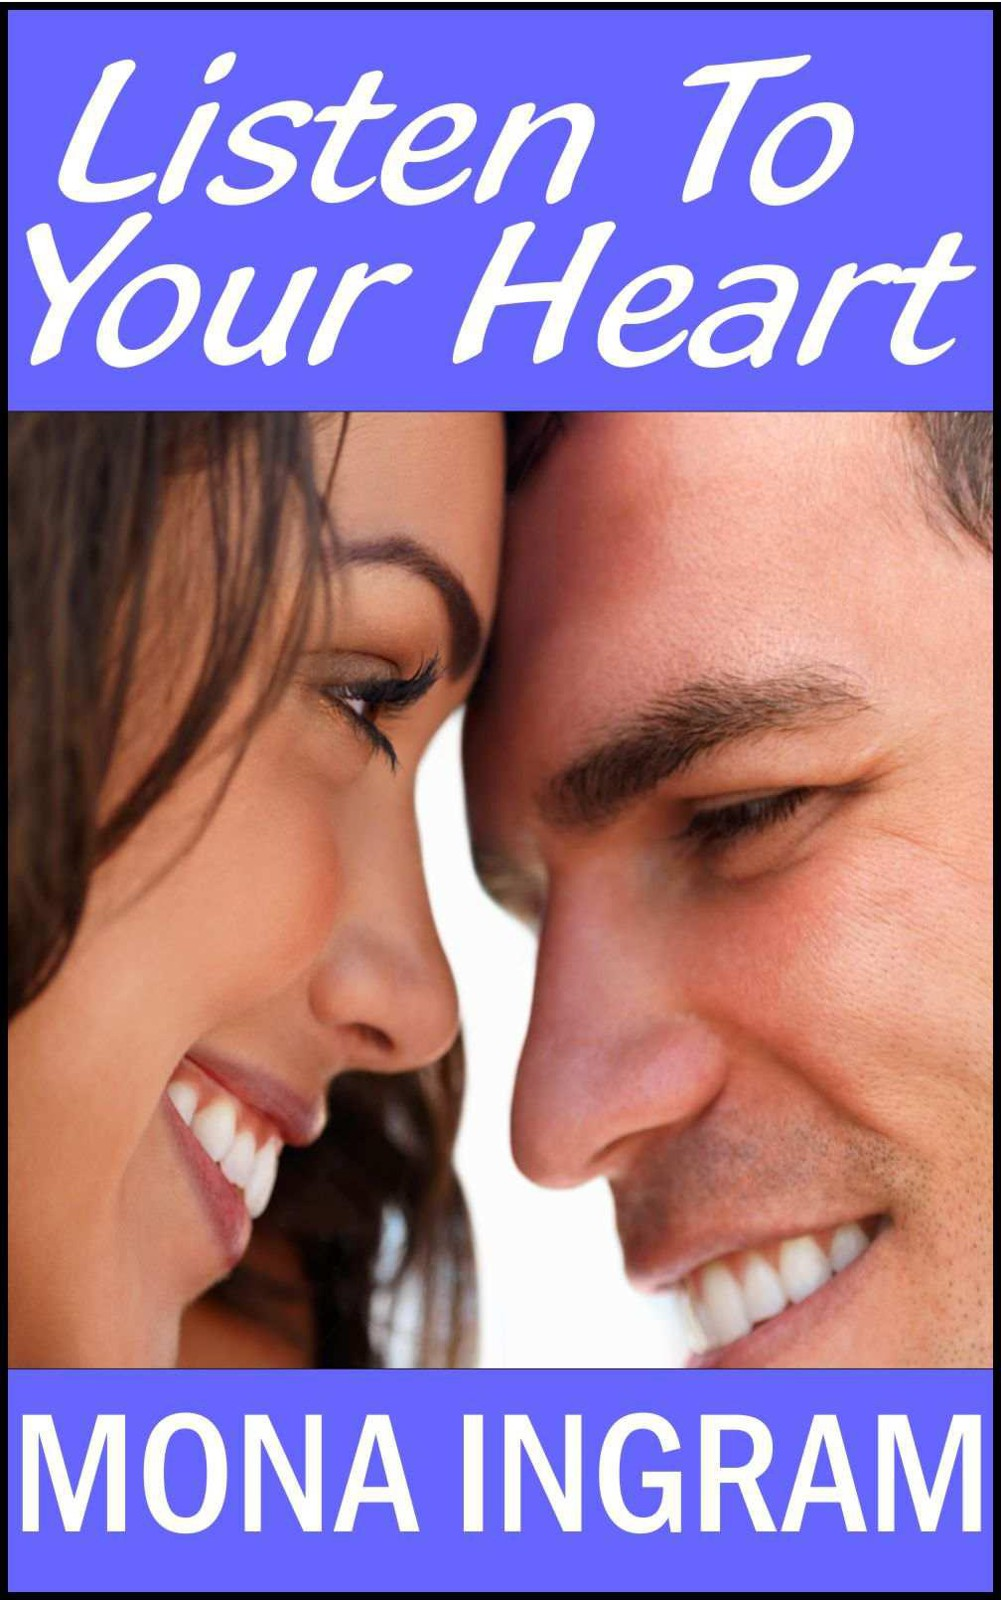 Listen to Your Heart by Mona Ingram